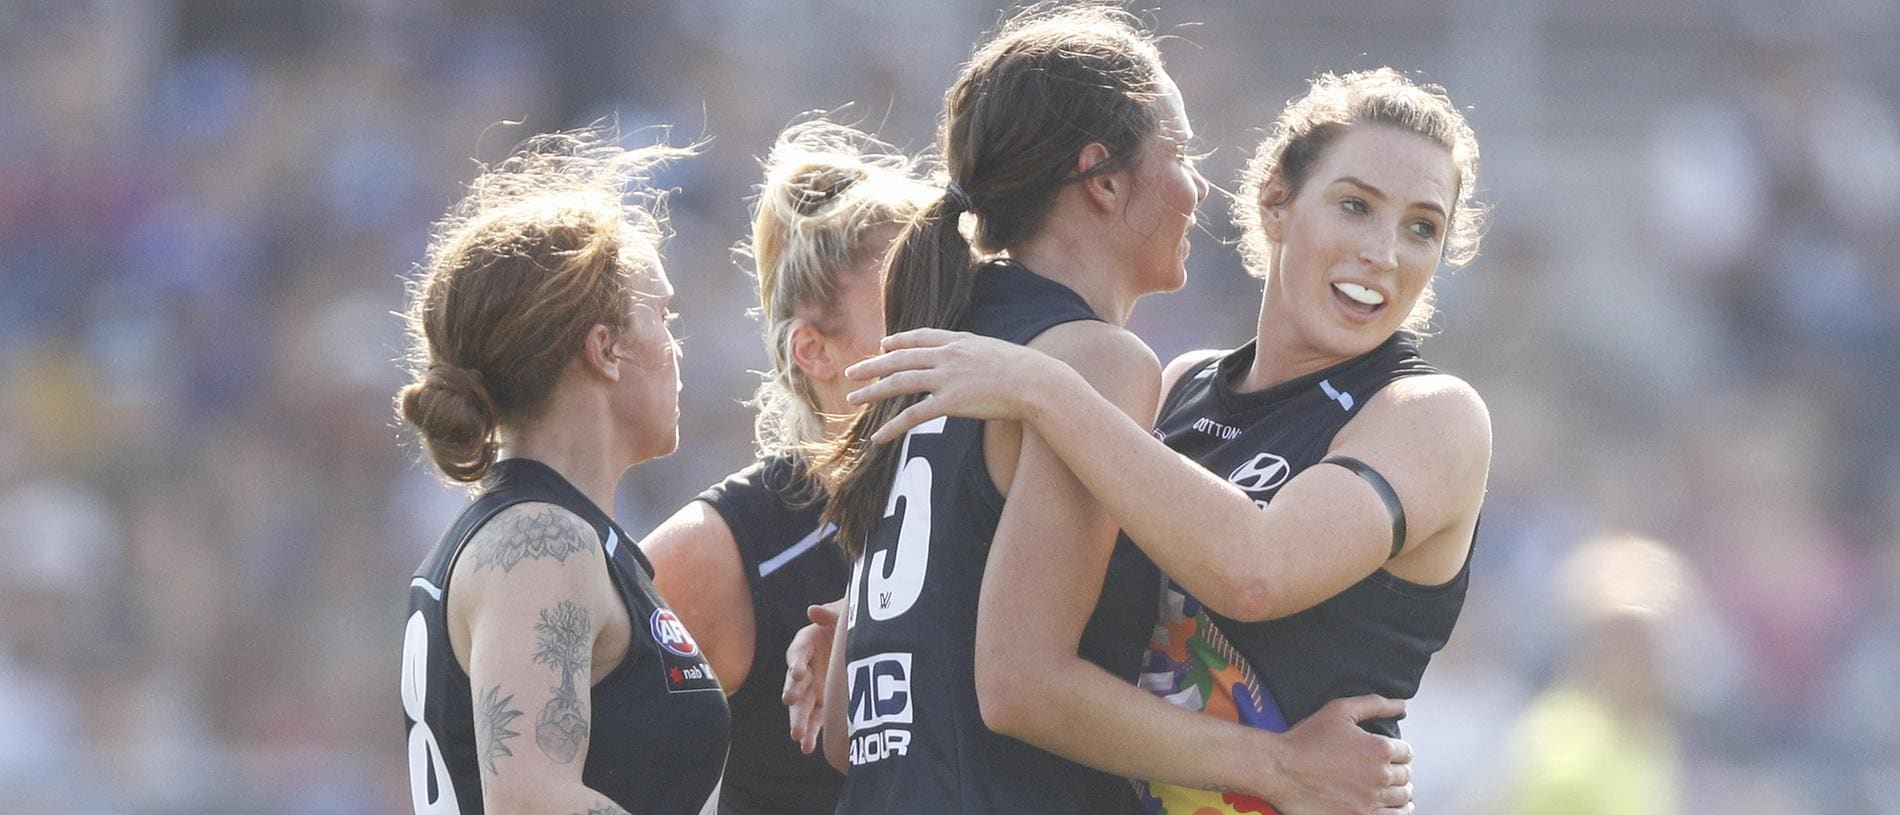 Chloe Dalton of the Blues (second right) celebrates a goal with teammates during the Round 7 match between the Western Bulldogs and the Carlton Blues at Victoria University Whitten Oval in Melbourne, Sunday, March 17, 2019. (AAP Image/Daniel Pockett) NO ARCHIVING, EDITORIAL USE ONLY